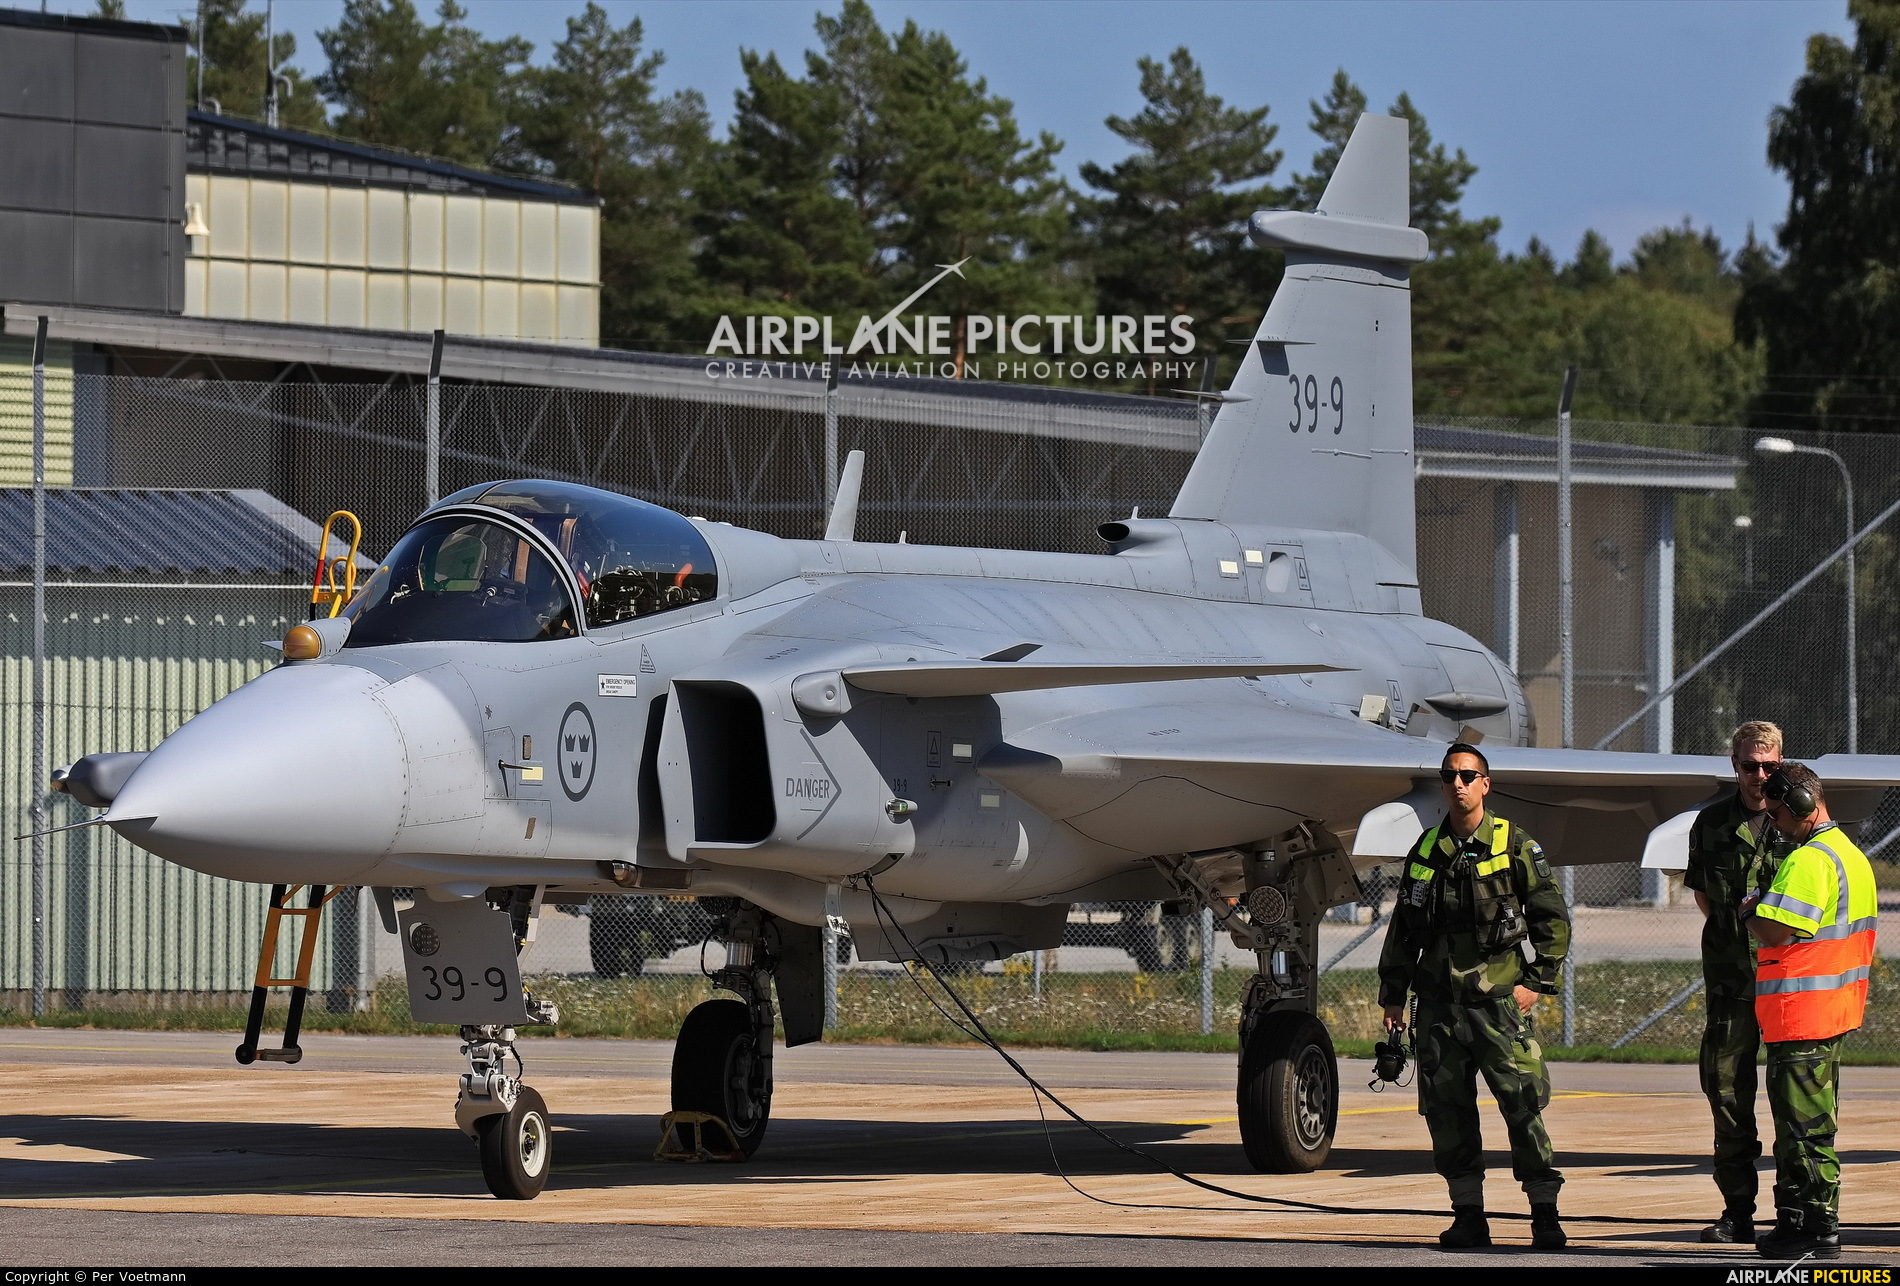 Sweden - Air Force 39-9 aircraft at Ronneby